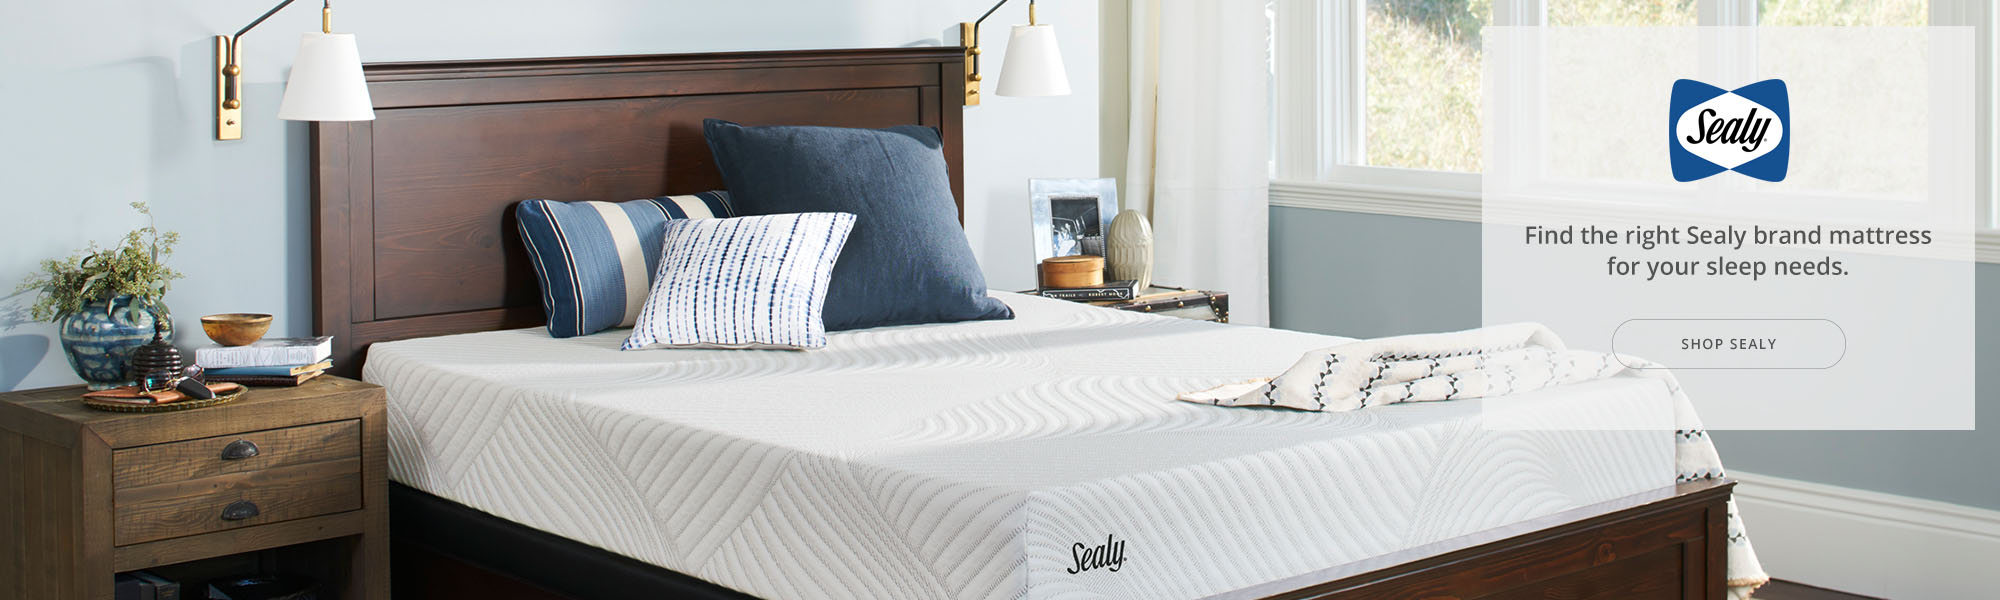 Sealy Mattress Slide